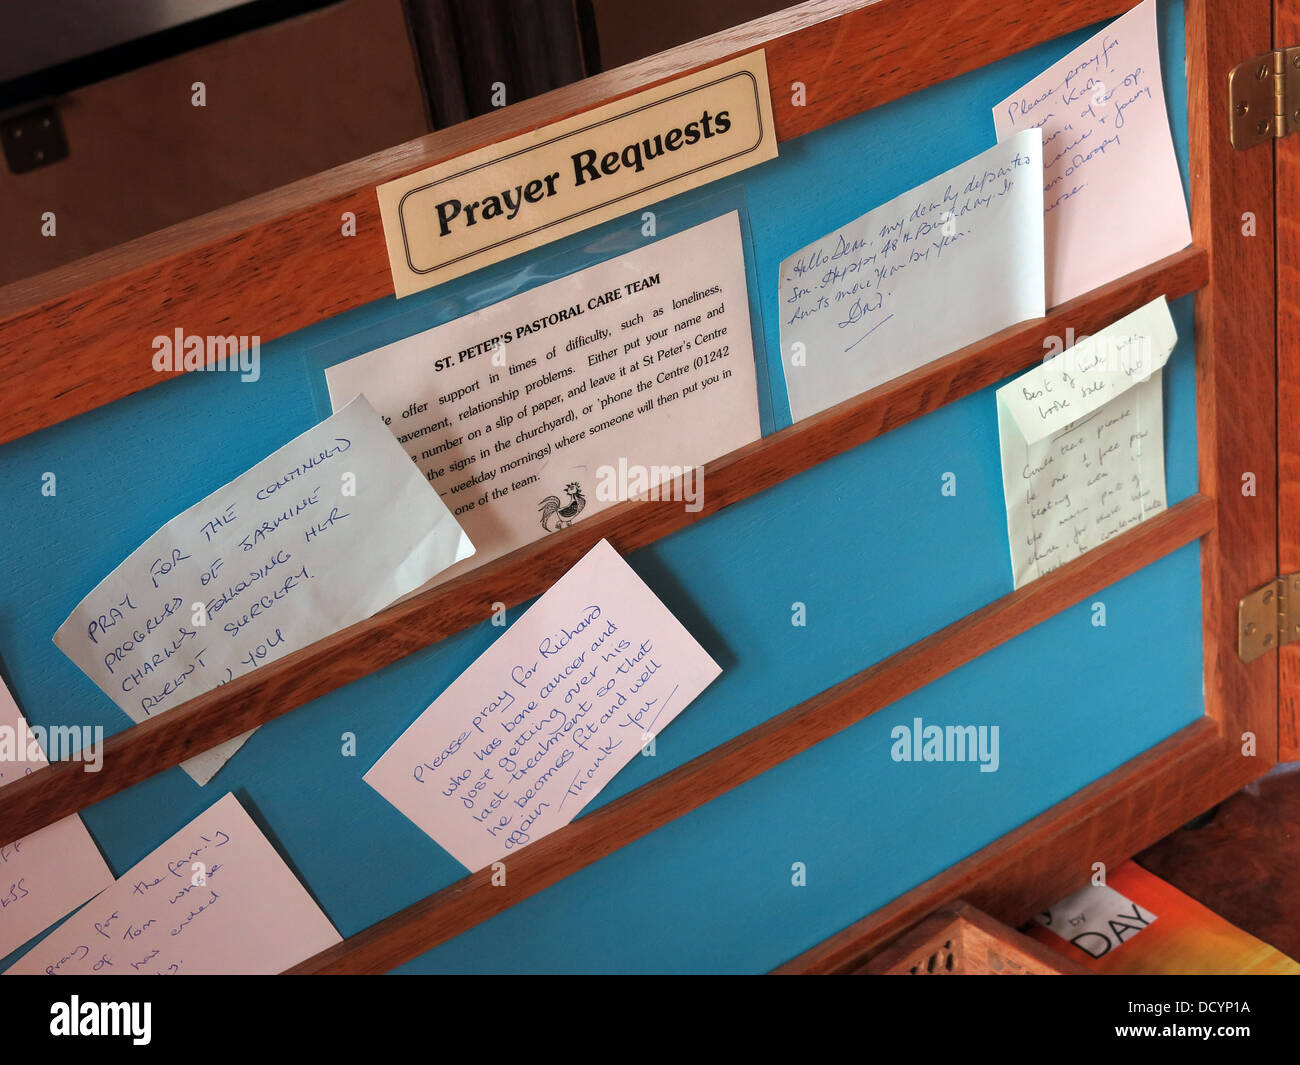 A prayer request board with notes, in a church entrance Winchcombe Cotswolds England UK - Stock Image